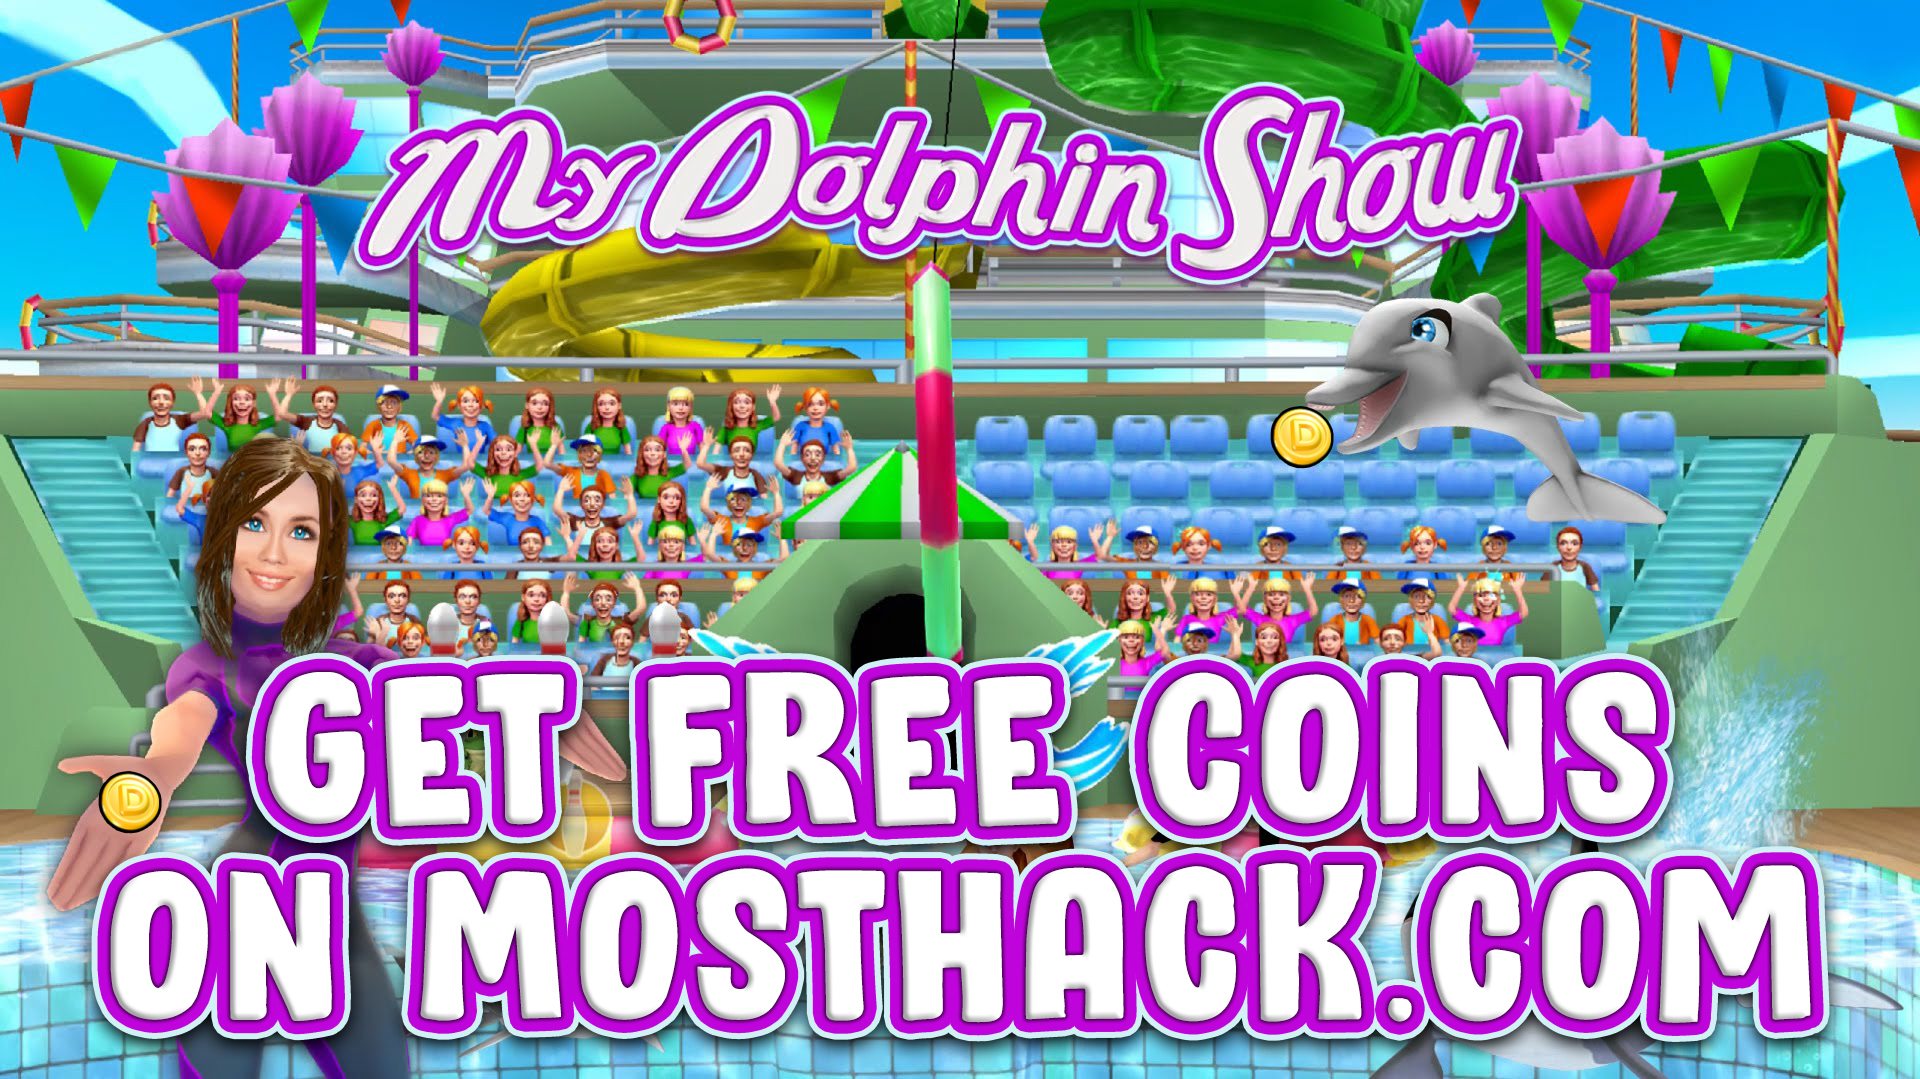 Image currently unavailable. Go to www.generator.mosthack.com and choose My Dolphin Show image, you will be redirect to My Dolphin Show Generator site.